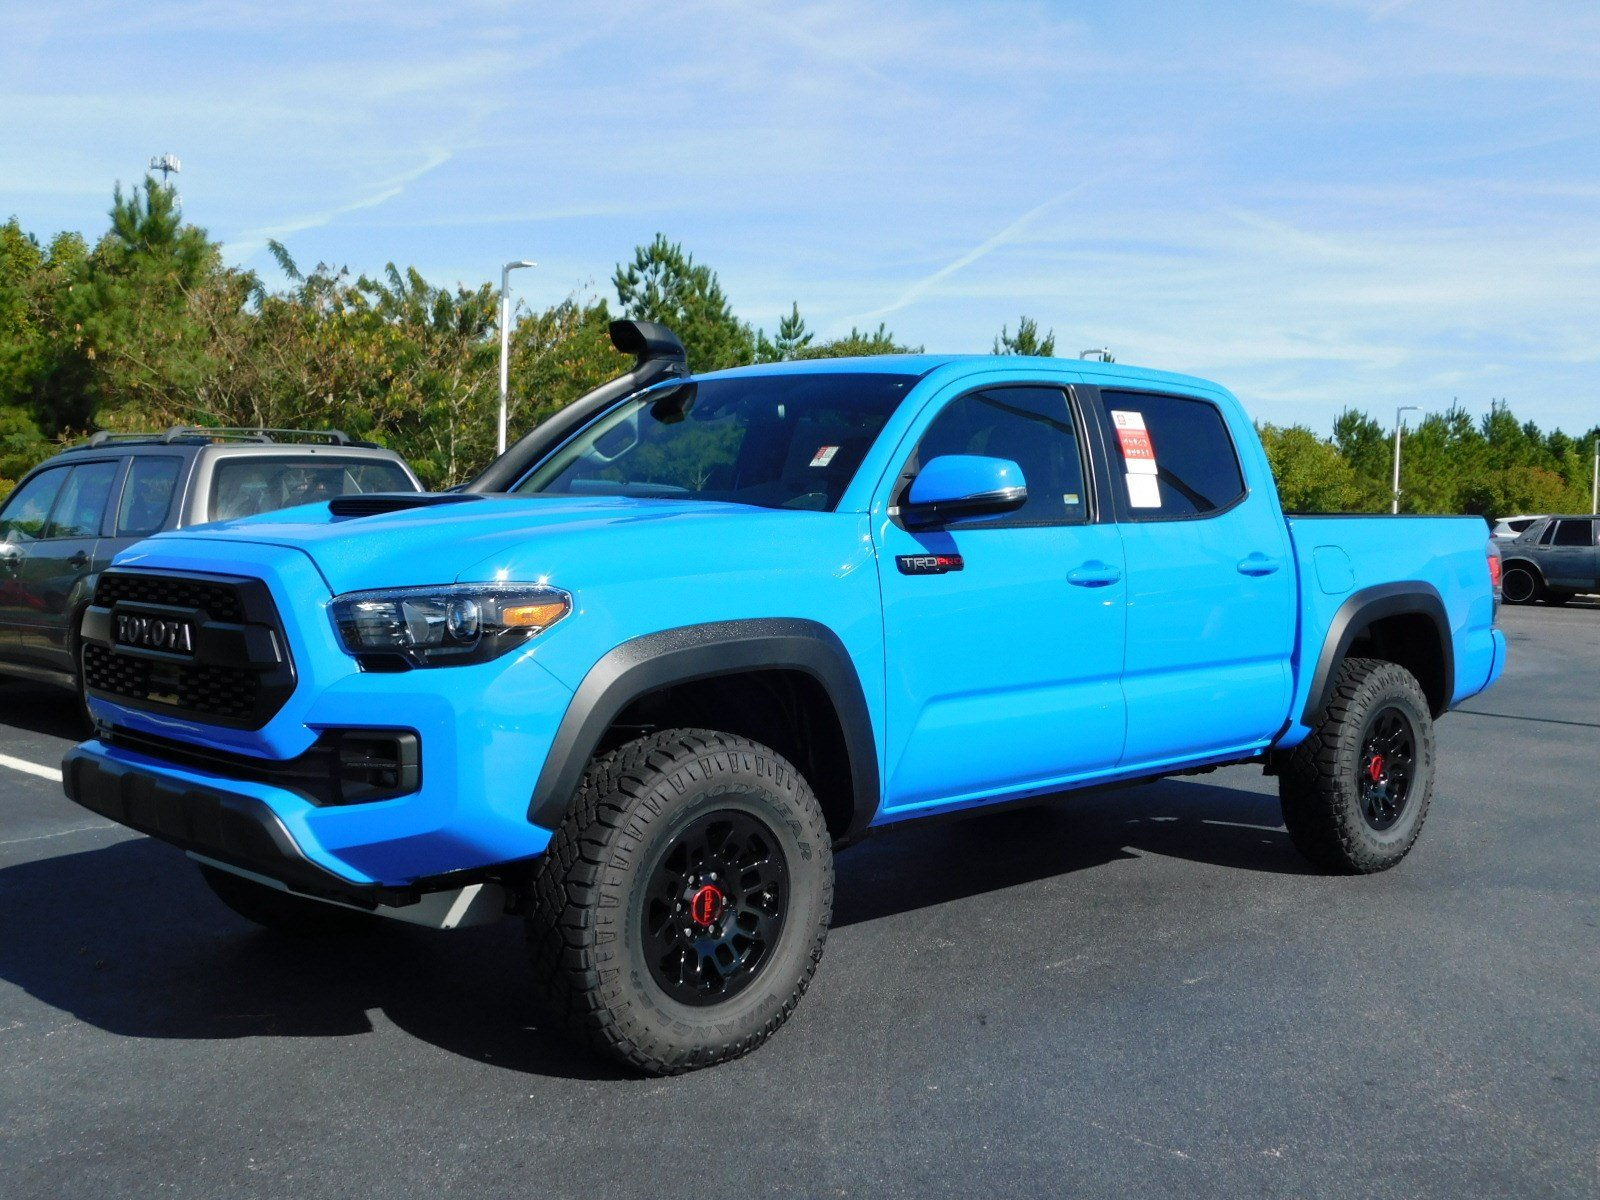 New 2019 Toyota Tacoma 4wd Trd Pro Double Cab For Sale X169058